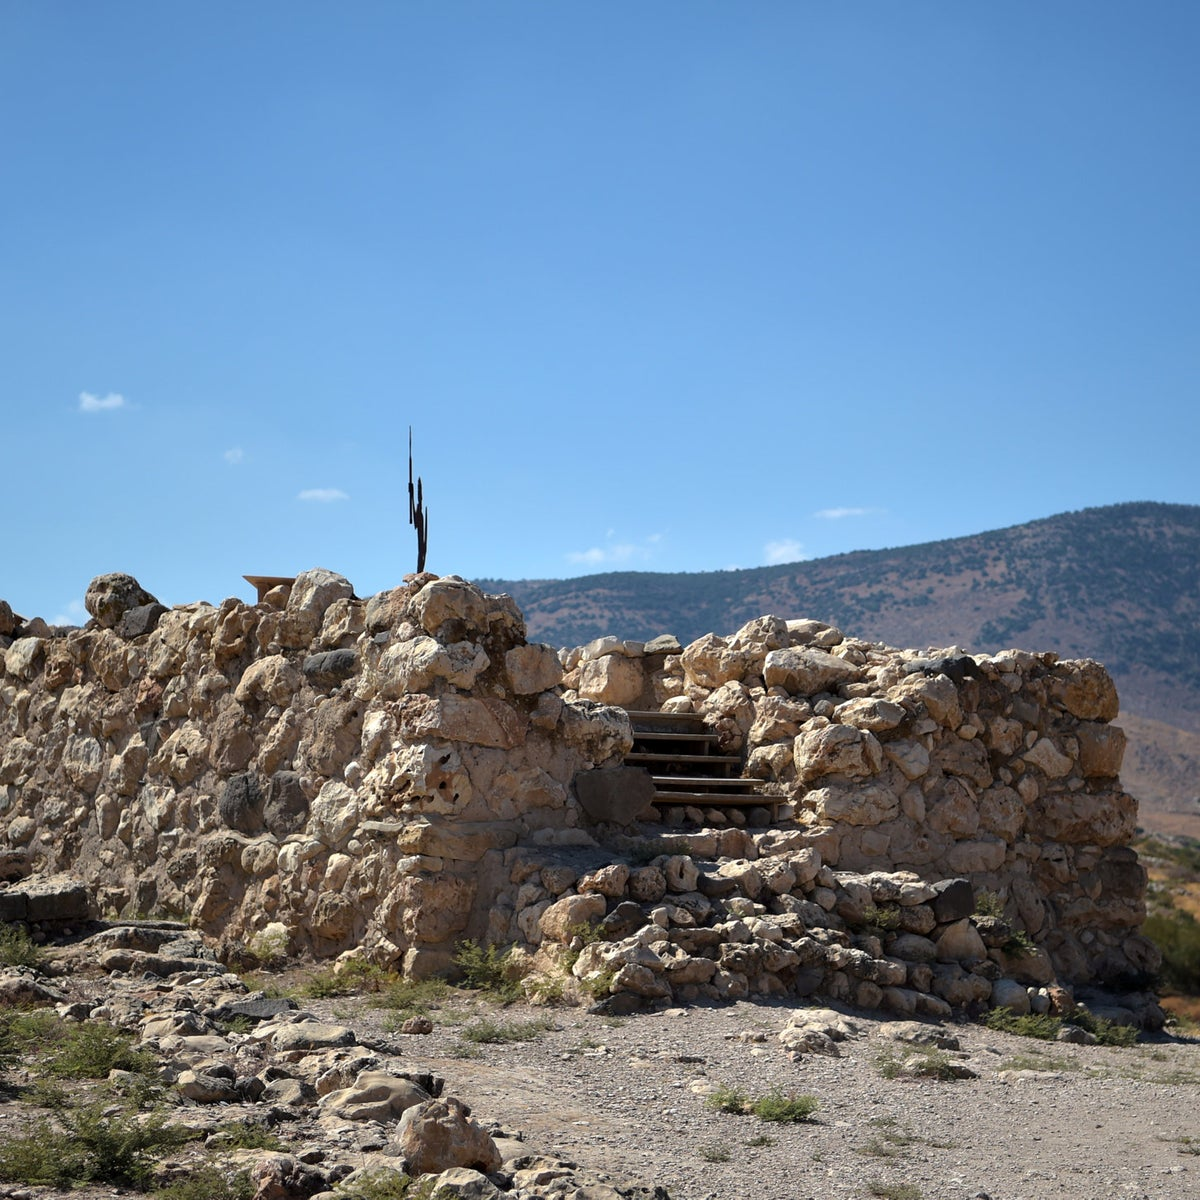 Tell Hazor: Monumental building once hailed as evidence of Solomon's prowess have been re-dated to about a century after the fabled king was supposed to have reigned.